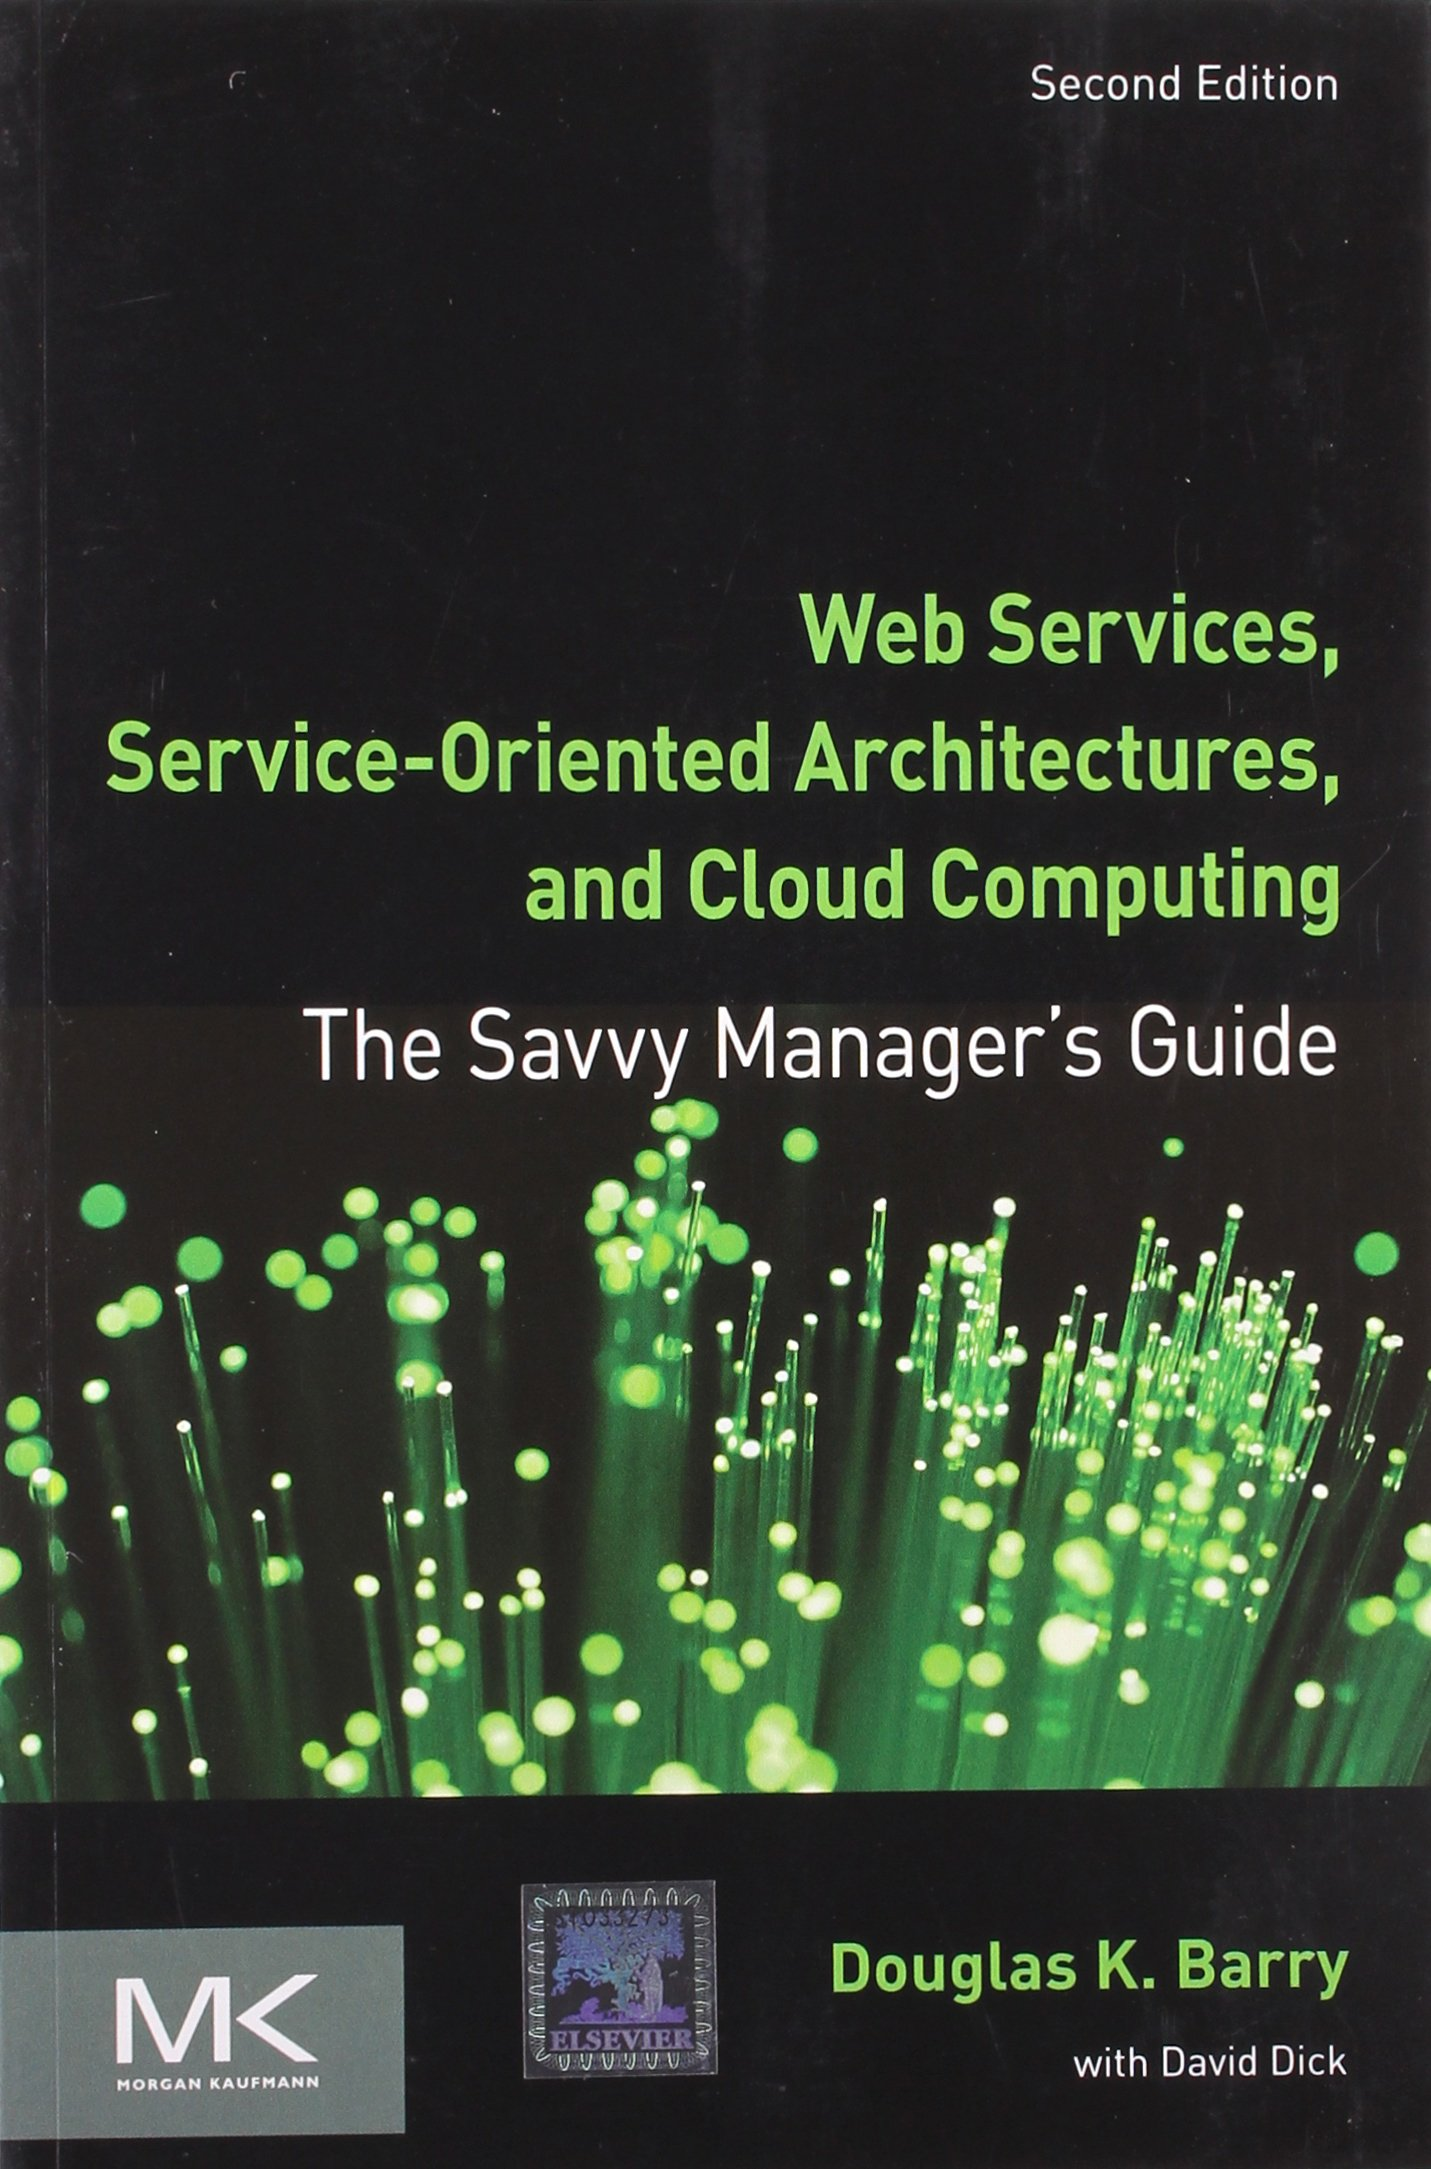 Web Services, Service-oriented Architectures, And Cloud Computing The Savvy Manager's  Guide 2nd Ed: Douglas K Barry: 9789351070368: Amazon.com: Books